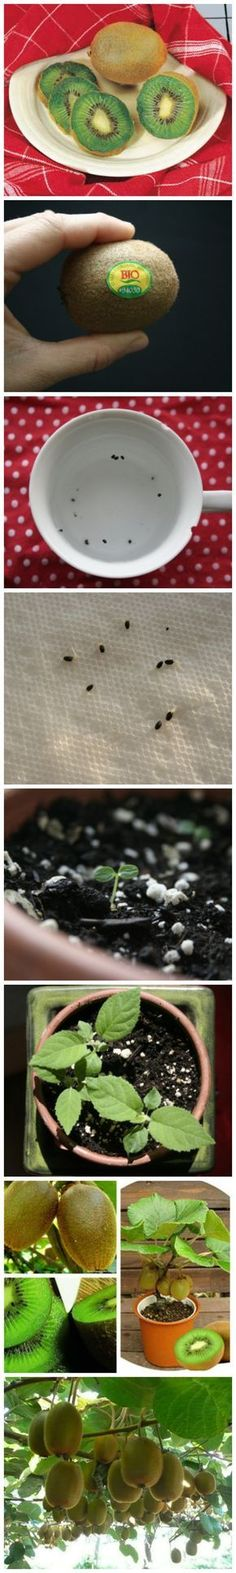 How To Grow A Kiwi Plant From Seed – DIY